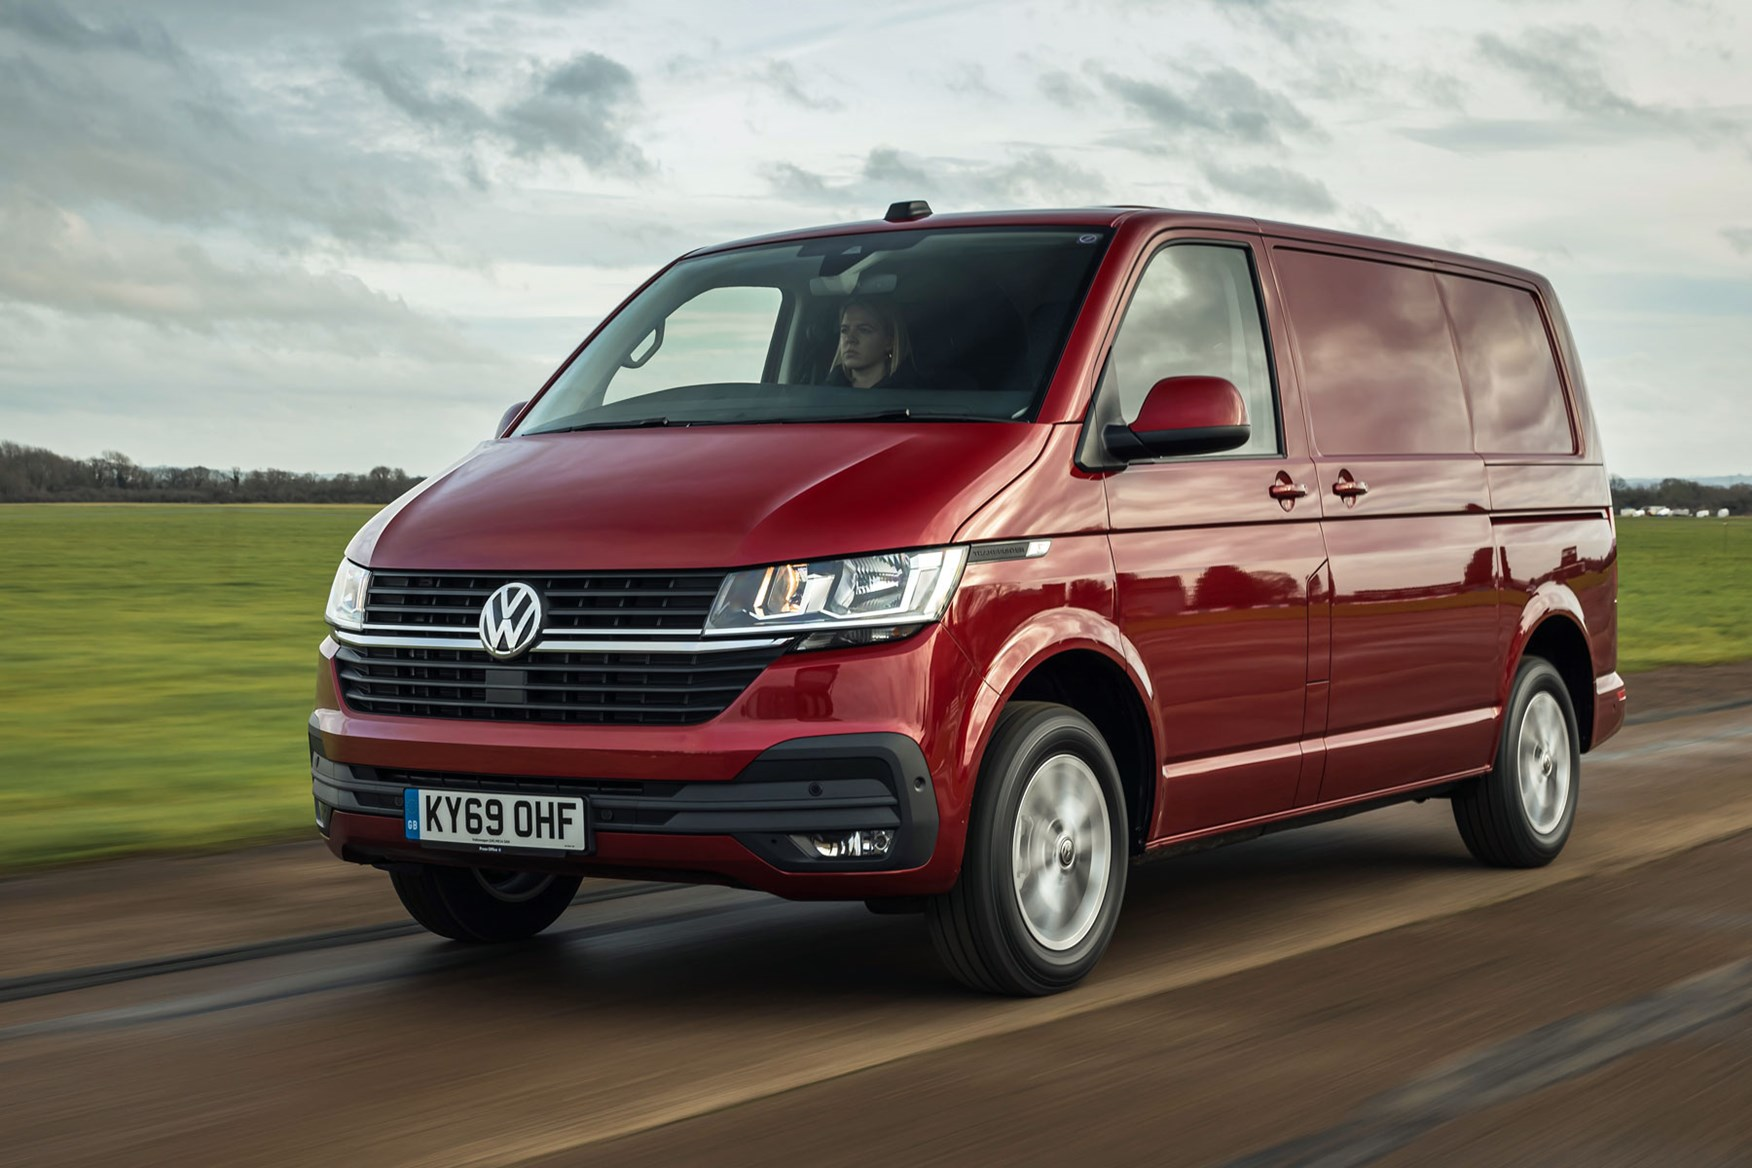 Volkswagen Transporter review, T6.1, 2020, red, front view, driving